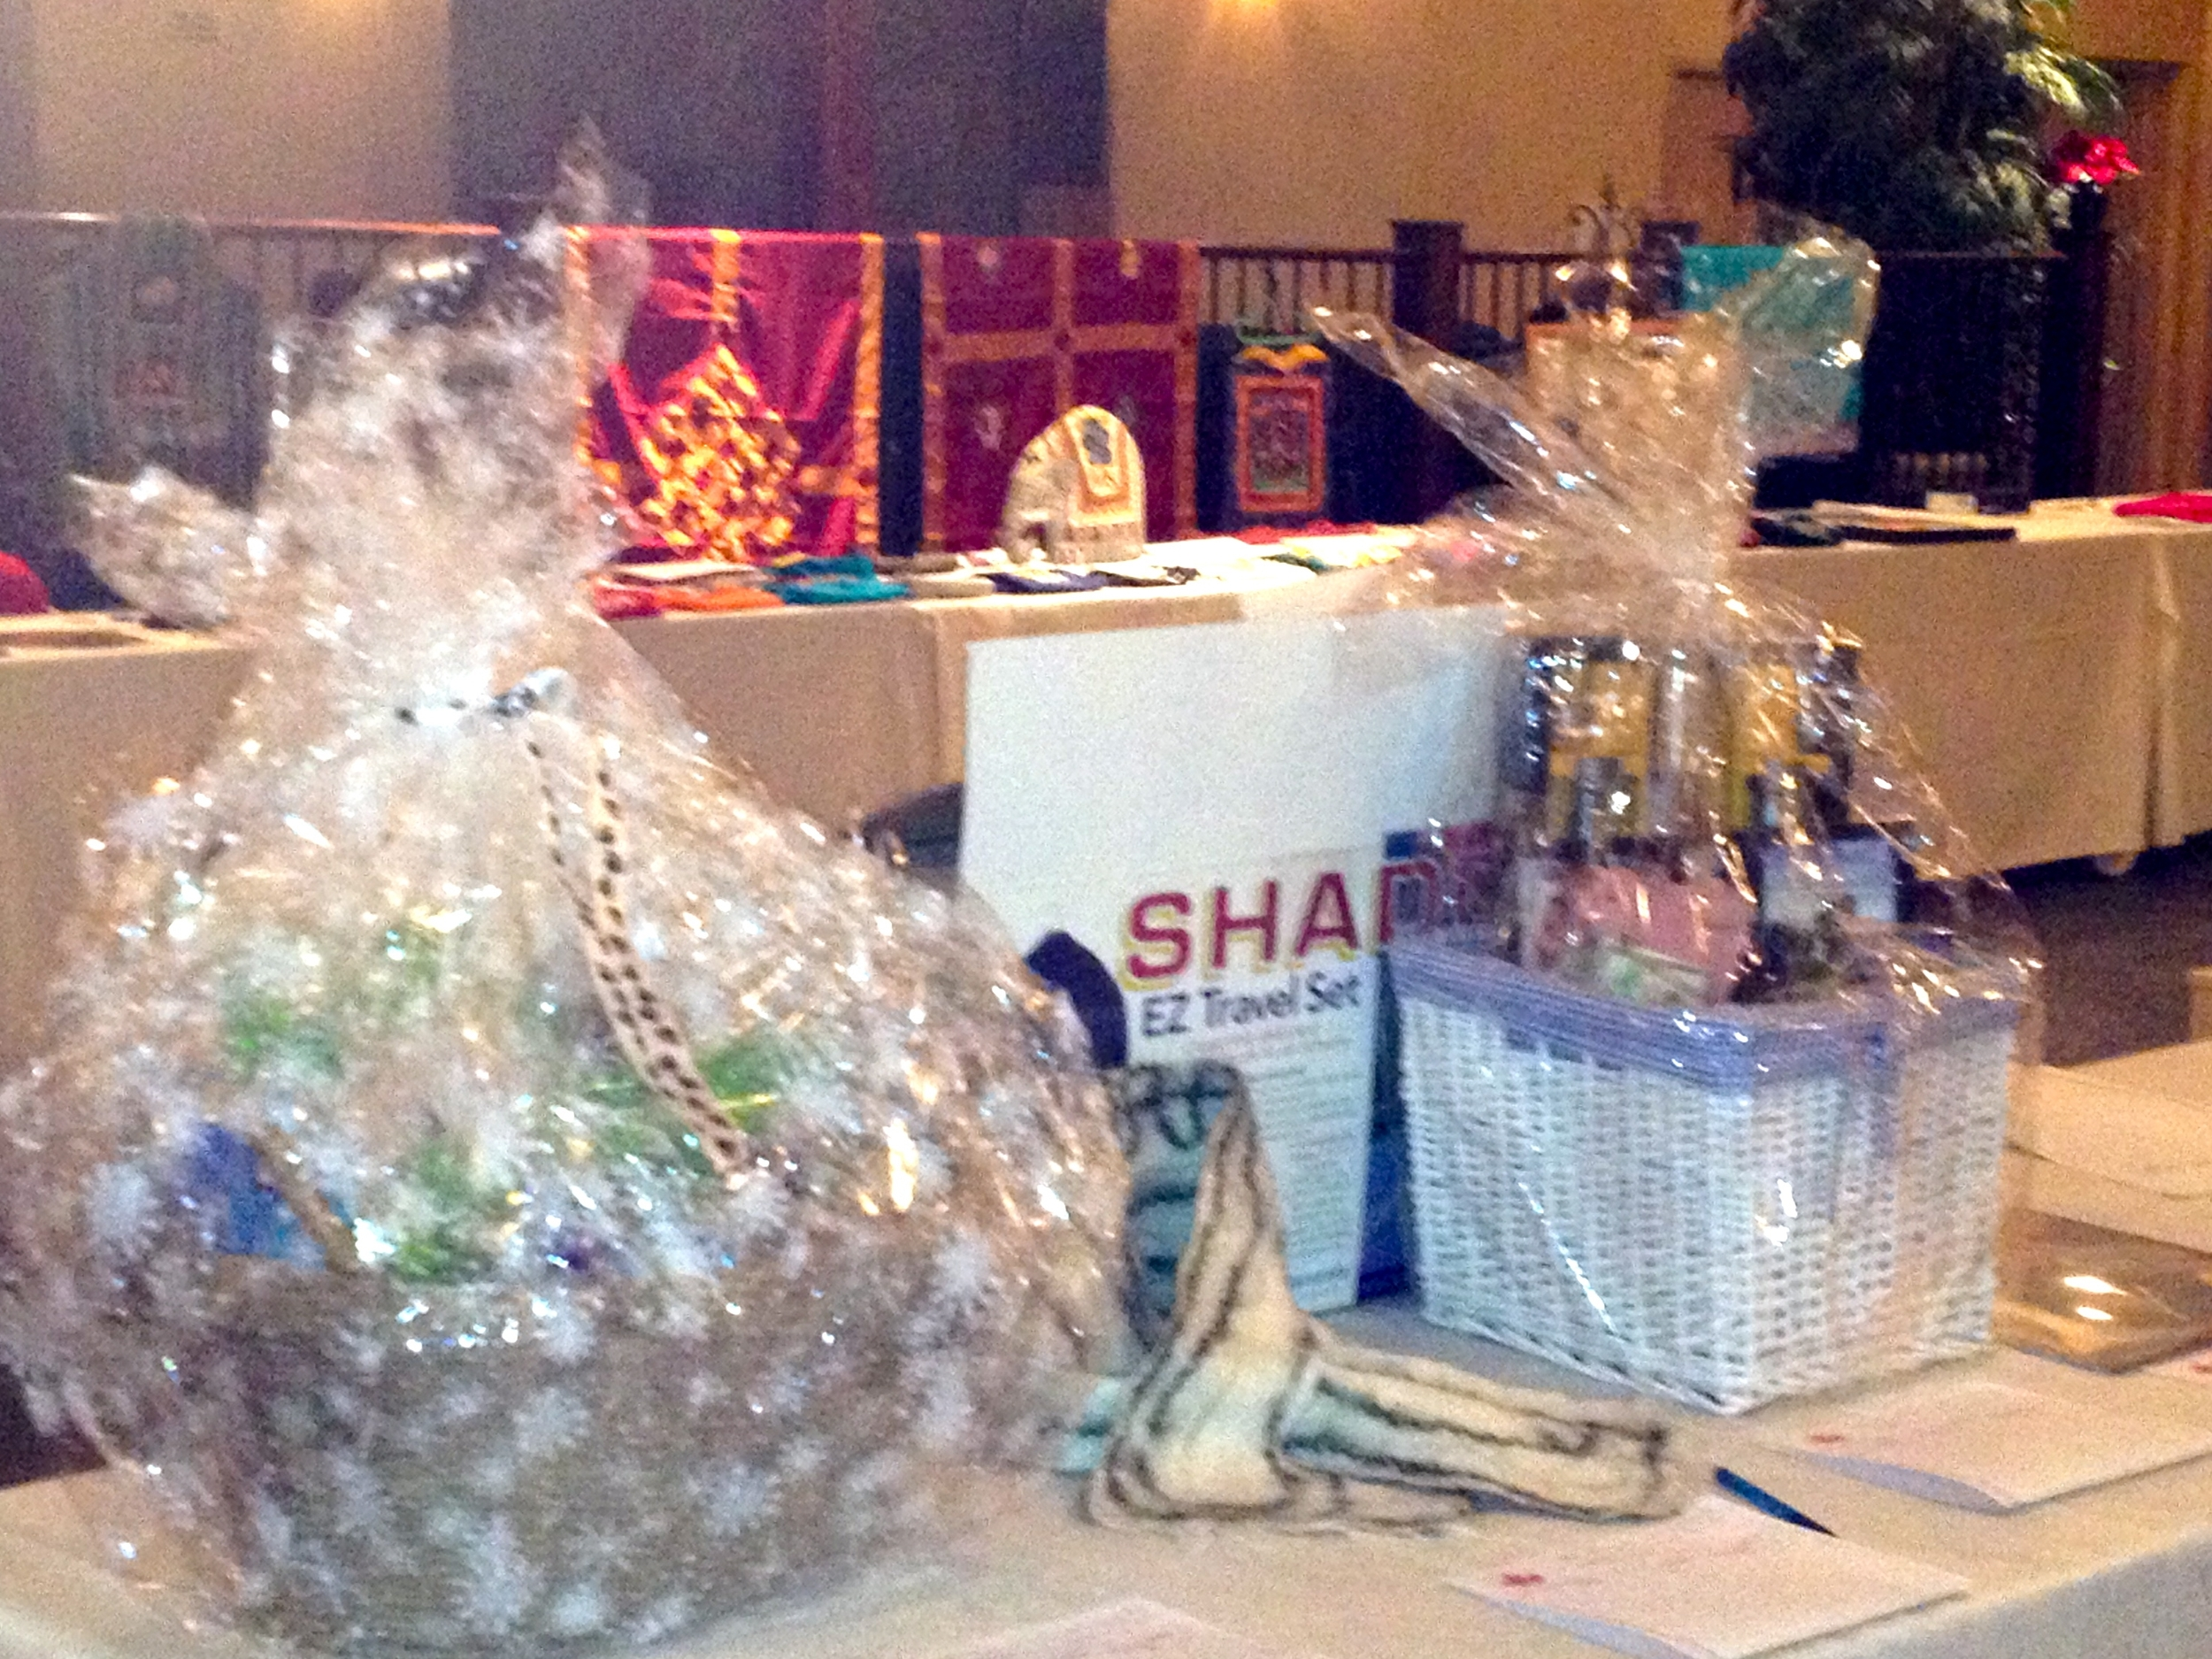 Nepal Night Auction baskets 2012.JPG